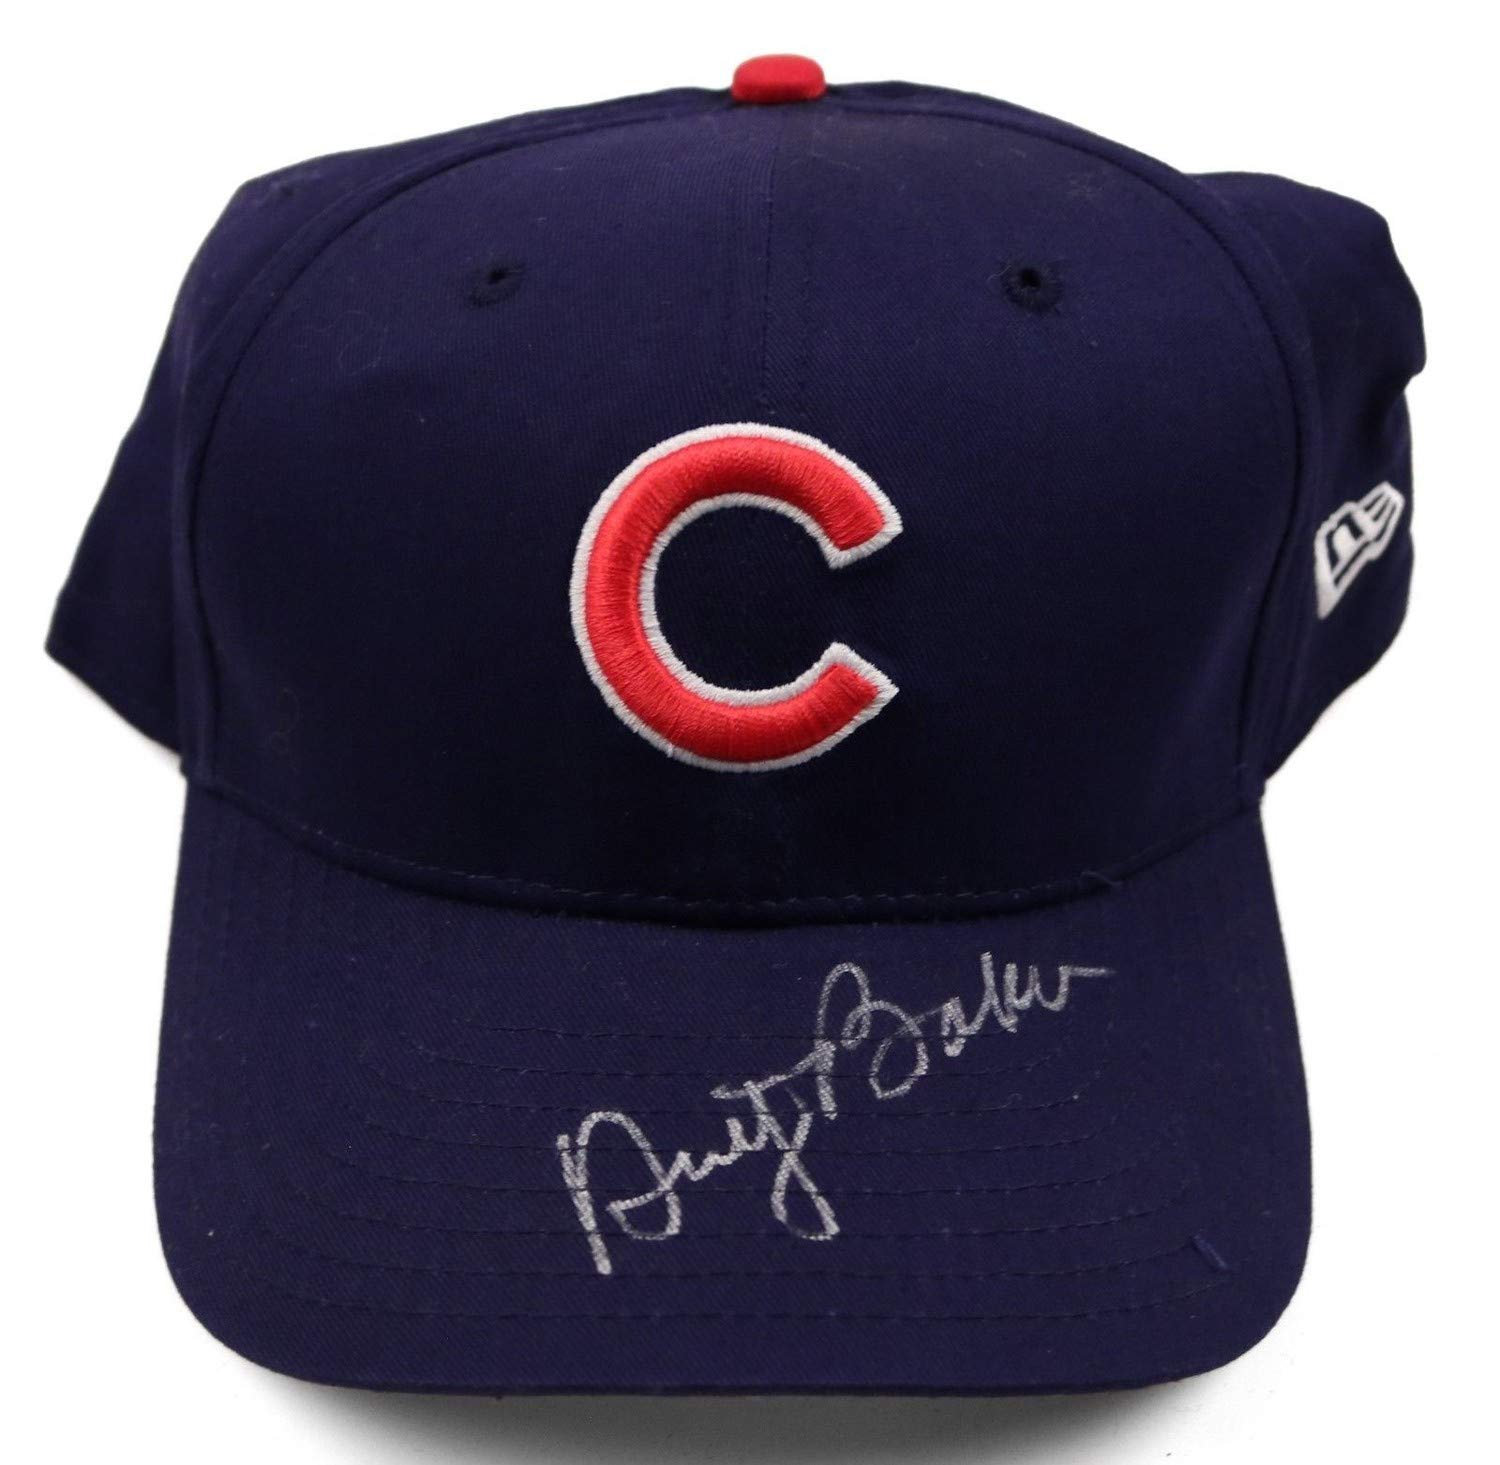 Dusty Baker Cubs Autographed Signed MLB New Era Hat JSA Coa